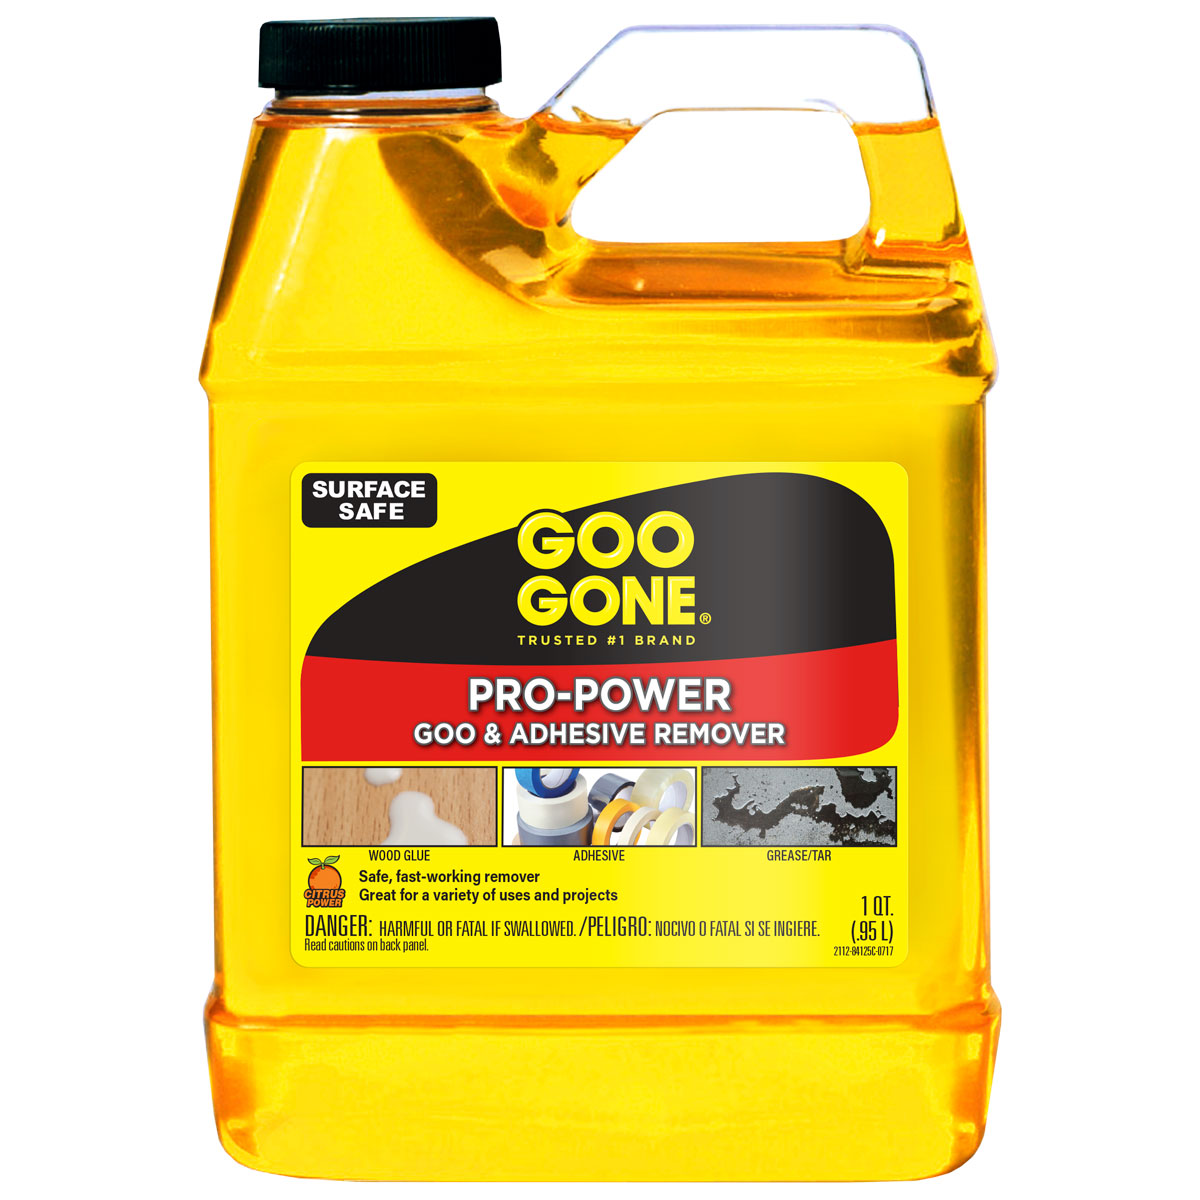 GOO GONE Pro Power Adhesive remover